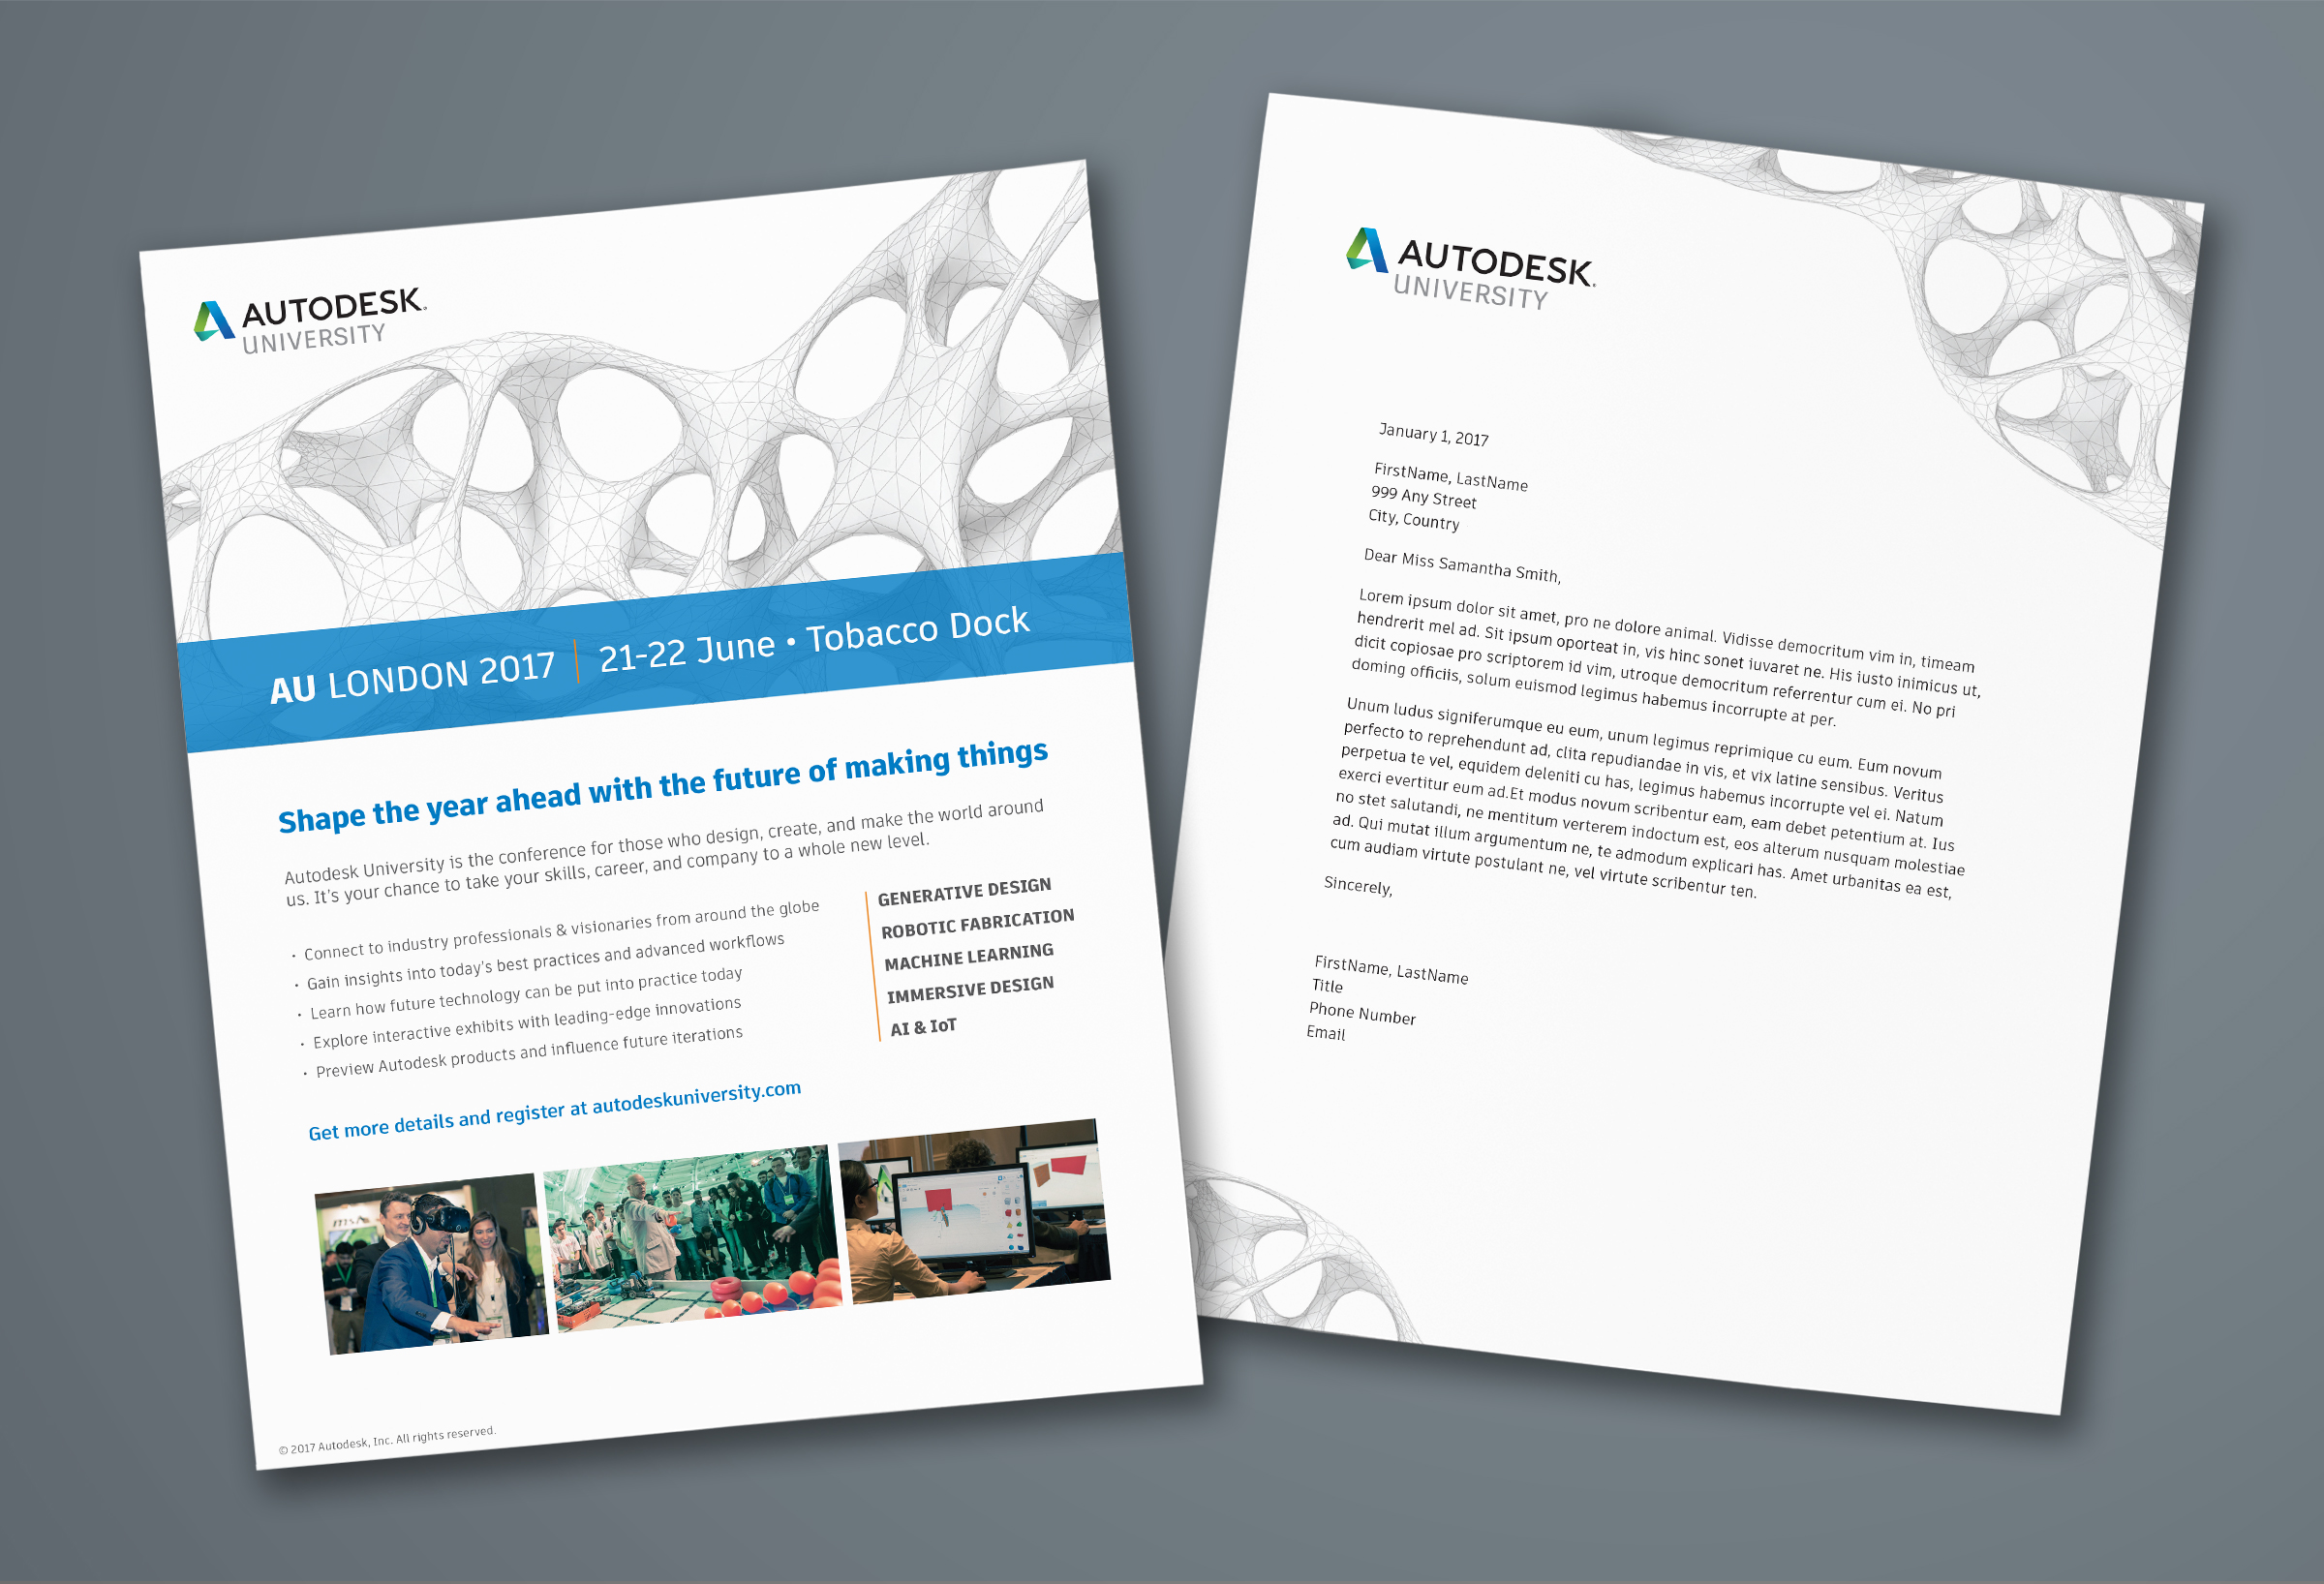 Autodesk 2017 Turnkey Sales Kit:  We helped field teams in 18 countries quickly tailor their outreach and drive attendees to local events, by providing them everything they needed—from customizable flyers and emails, to PowerPoint and letterhead templates.